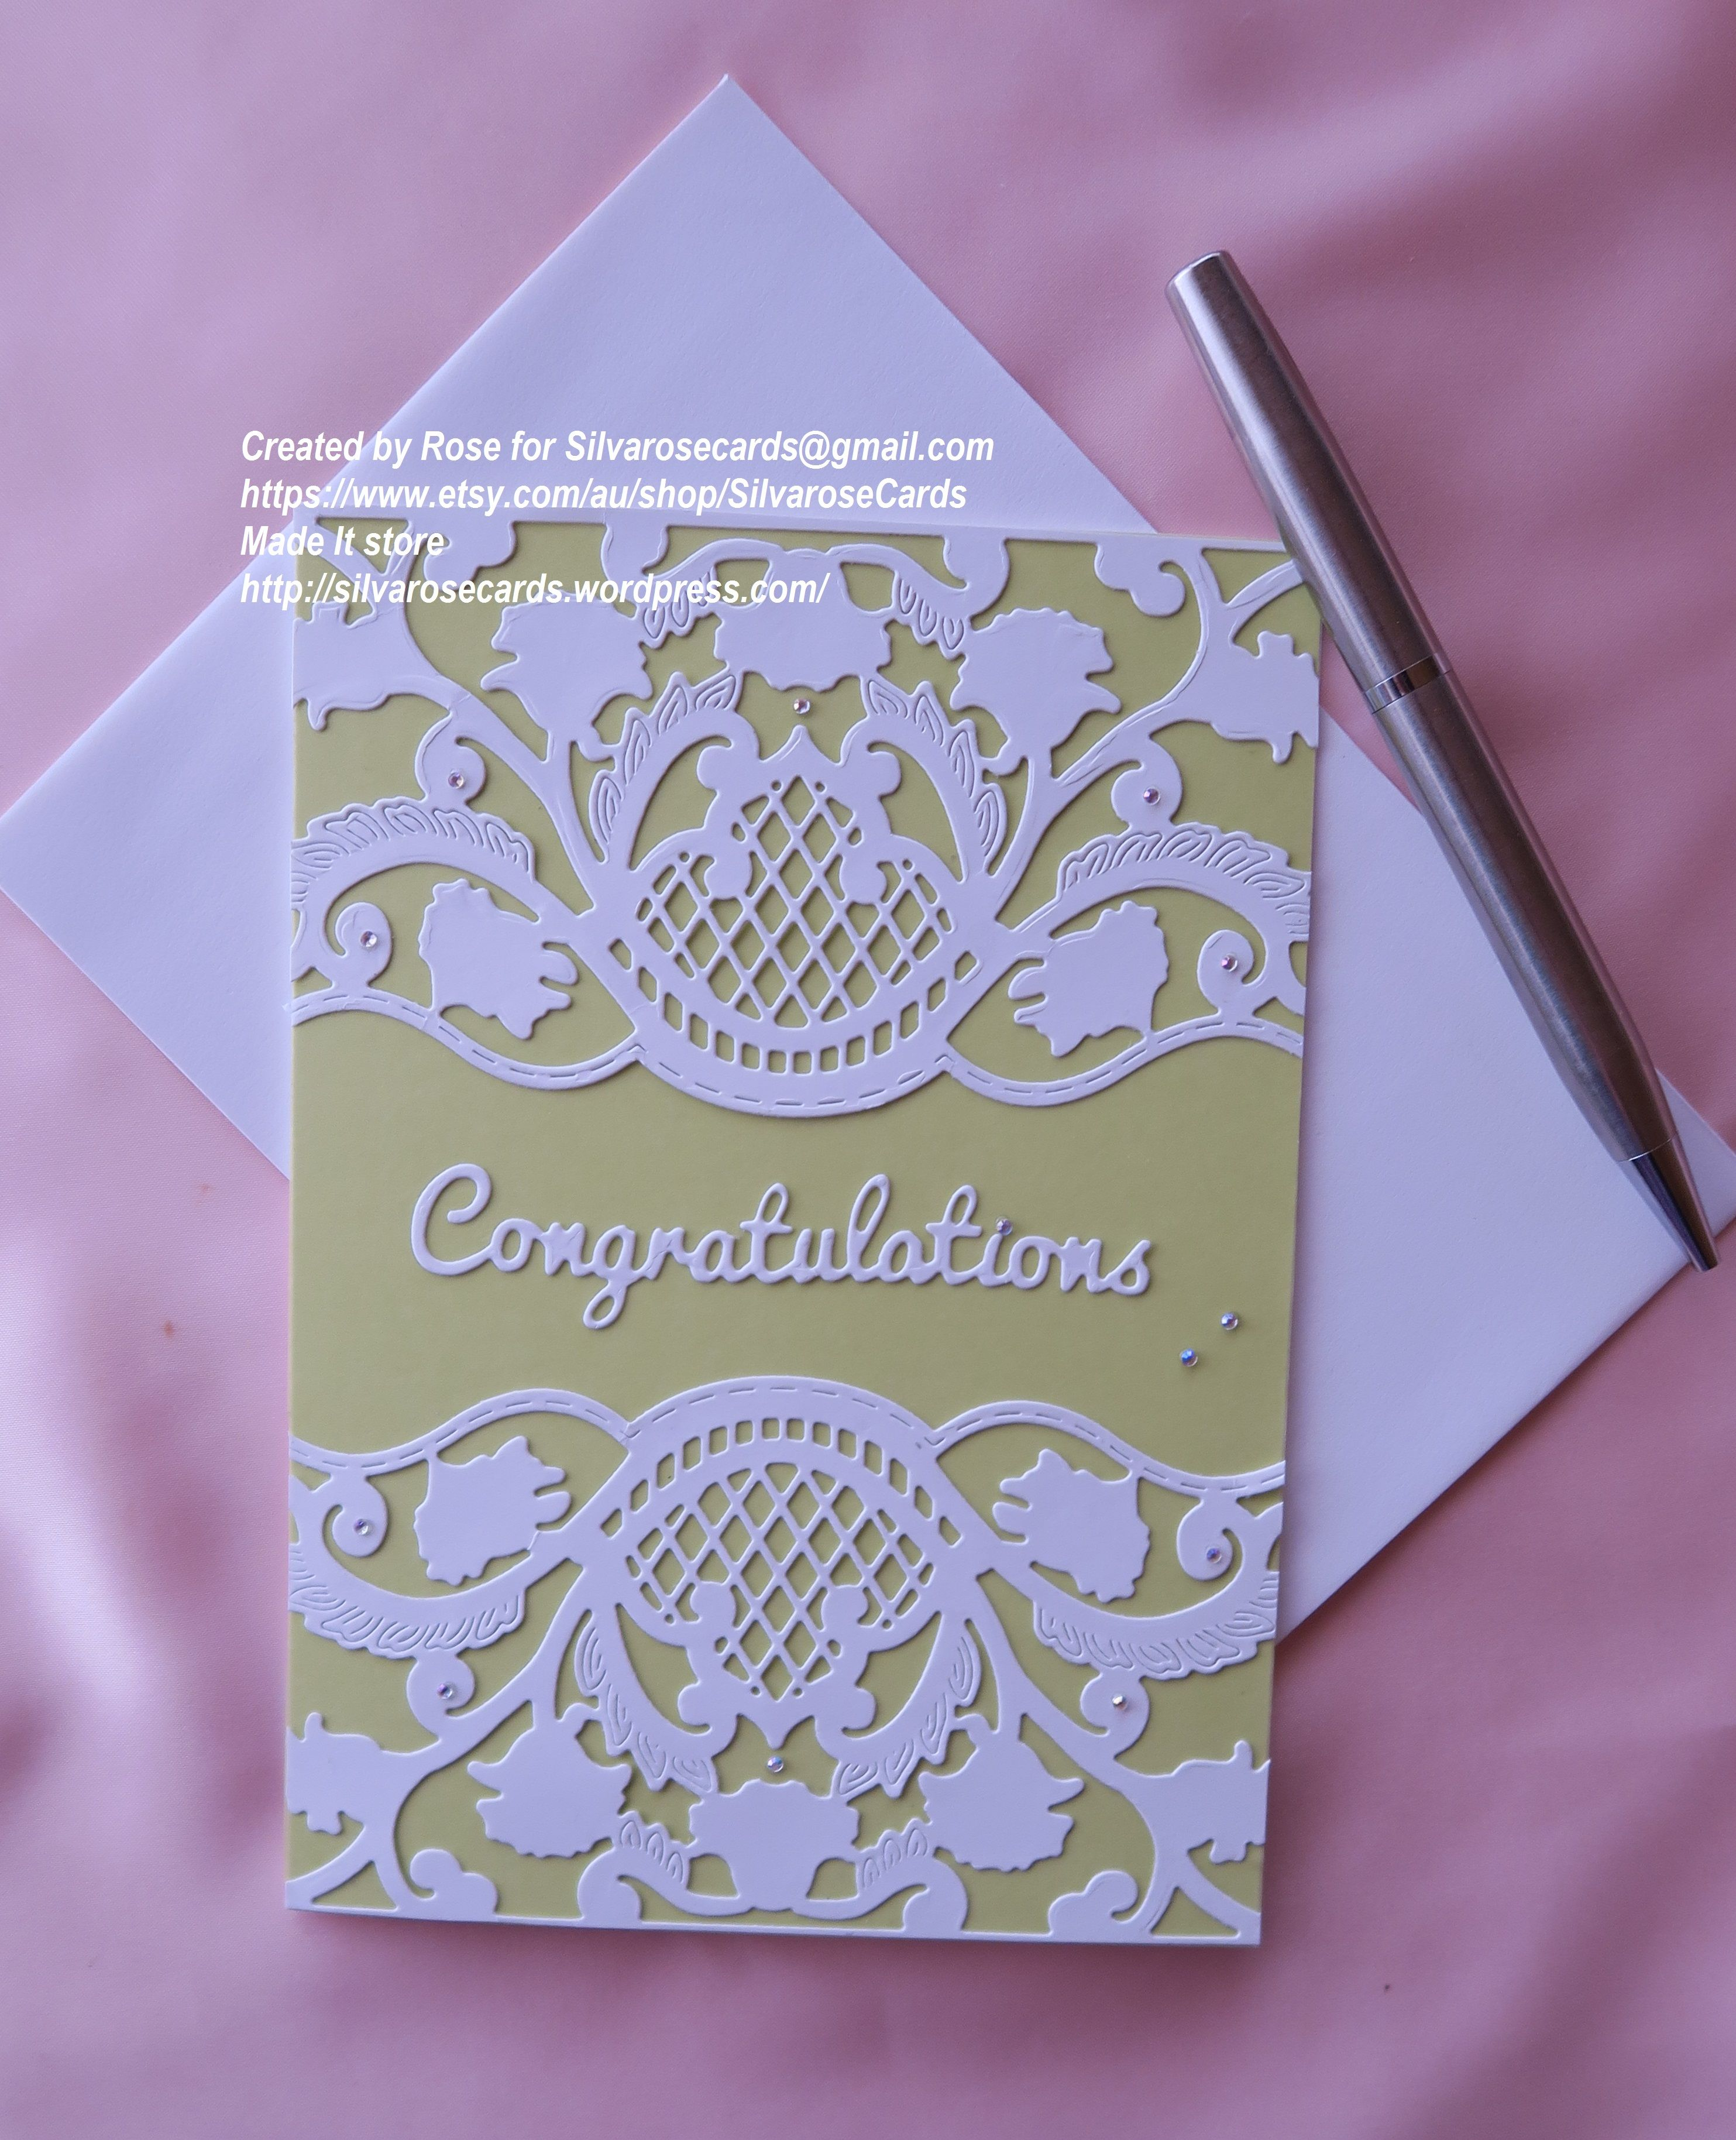 A wedding/anniversary/engagement card for someone special